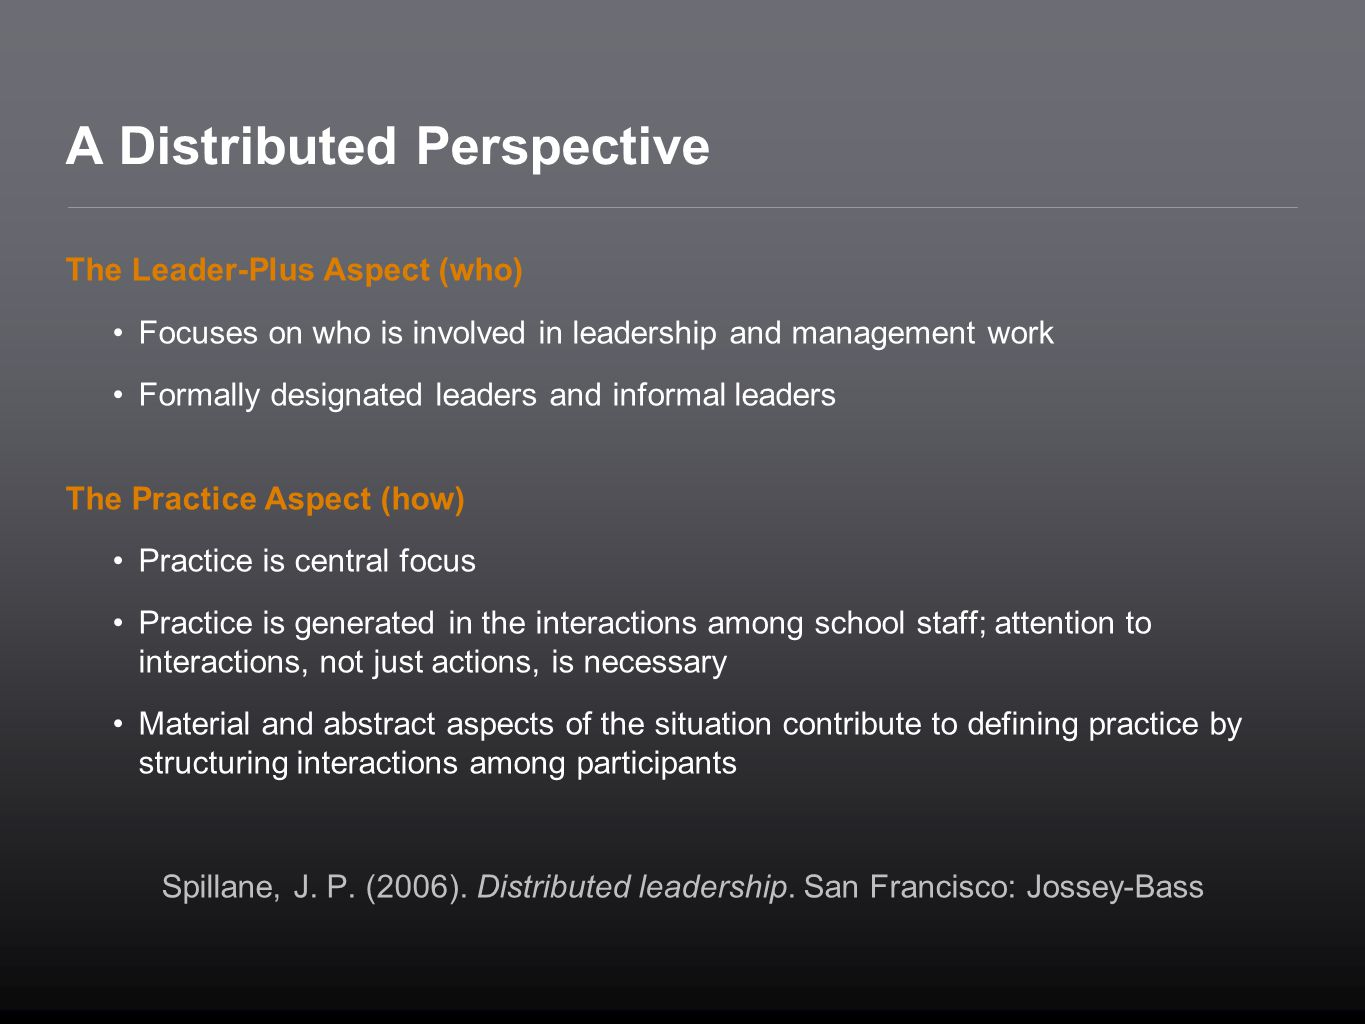 A Distributed Perspective